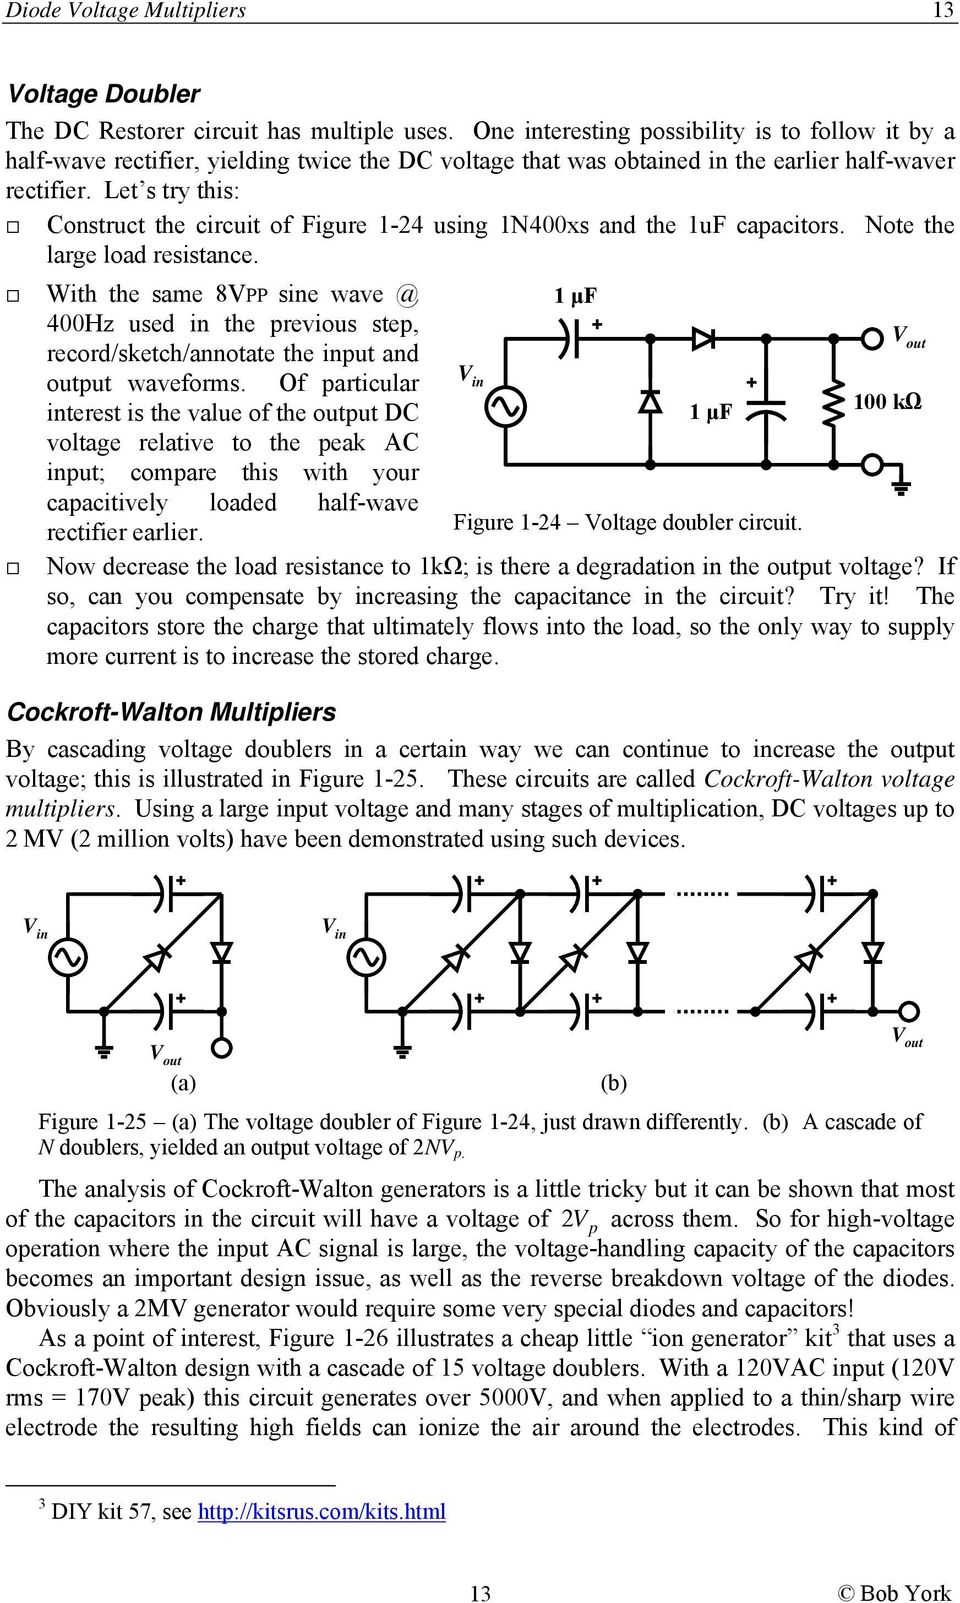 Diode Circuits Lab 1 Overview Table Of Contents Ece 2b Pdf Voltage Multipliers Let S Try This Construct The Circuit Figure 24 Using 1n400xs And